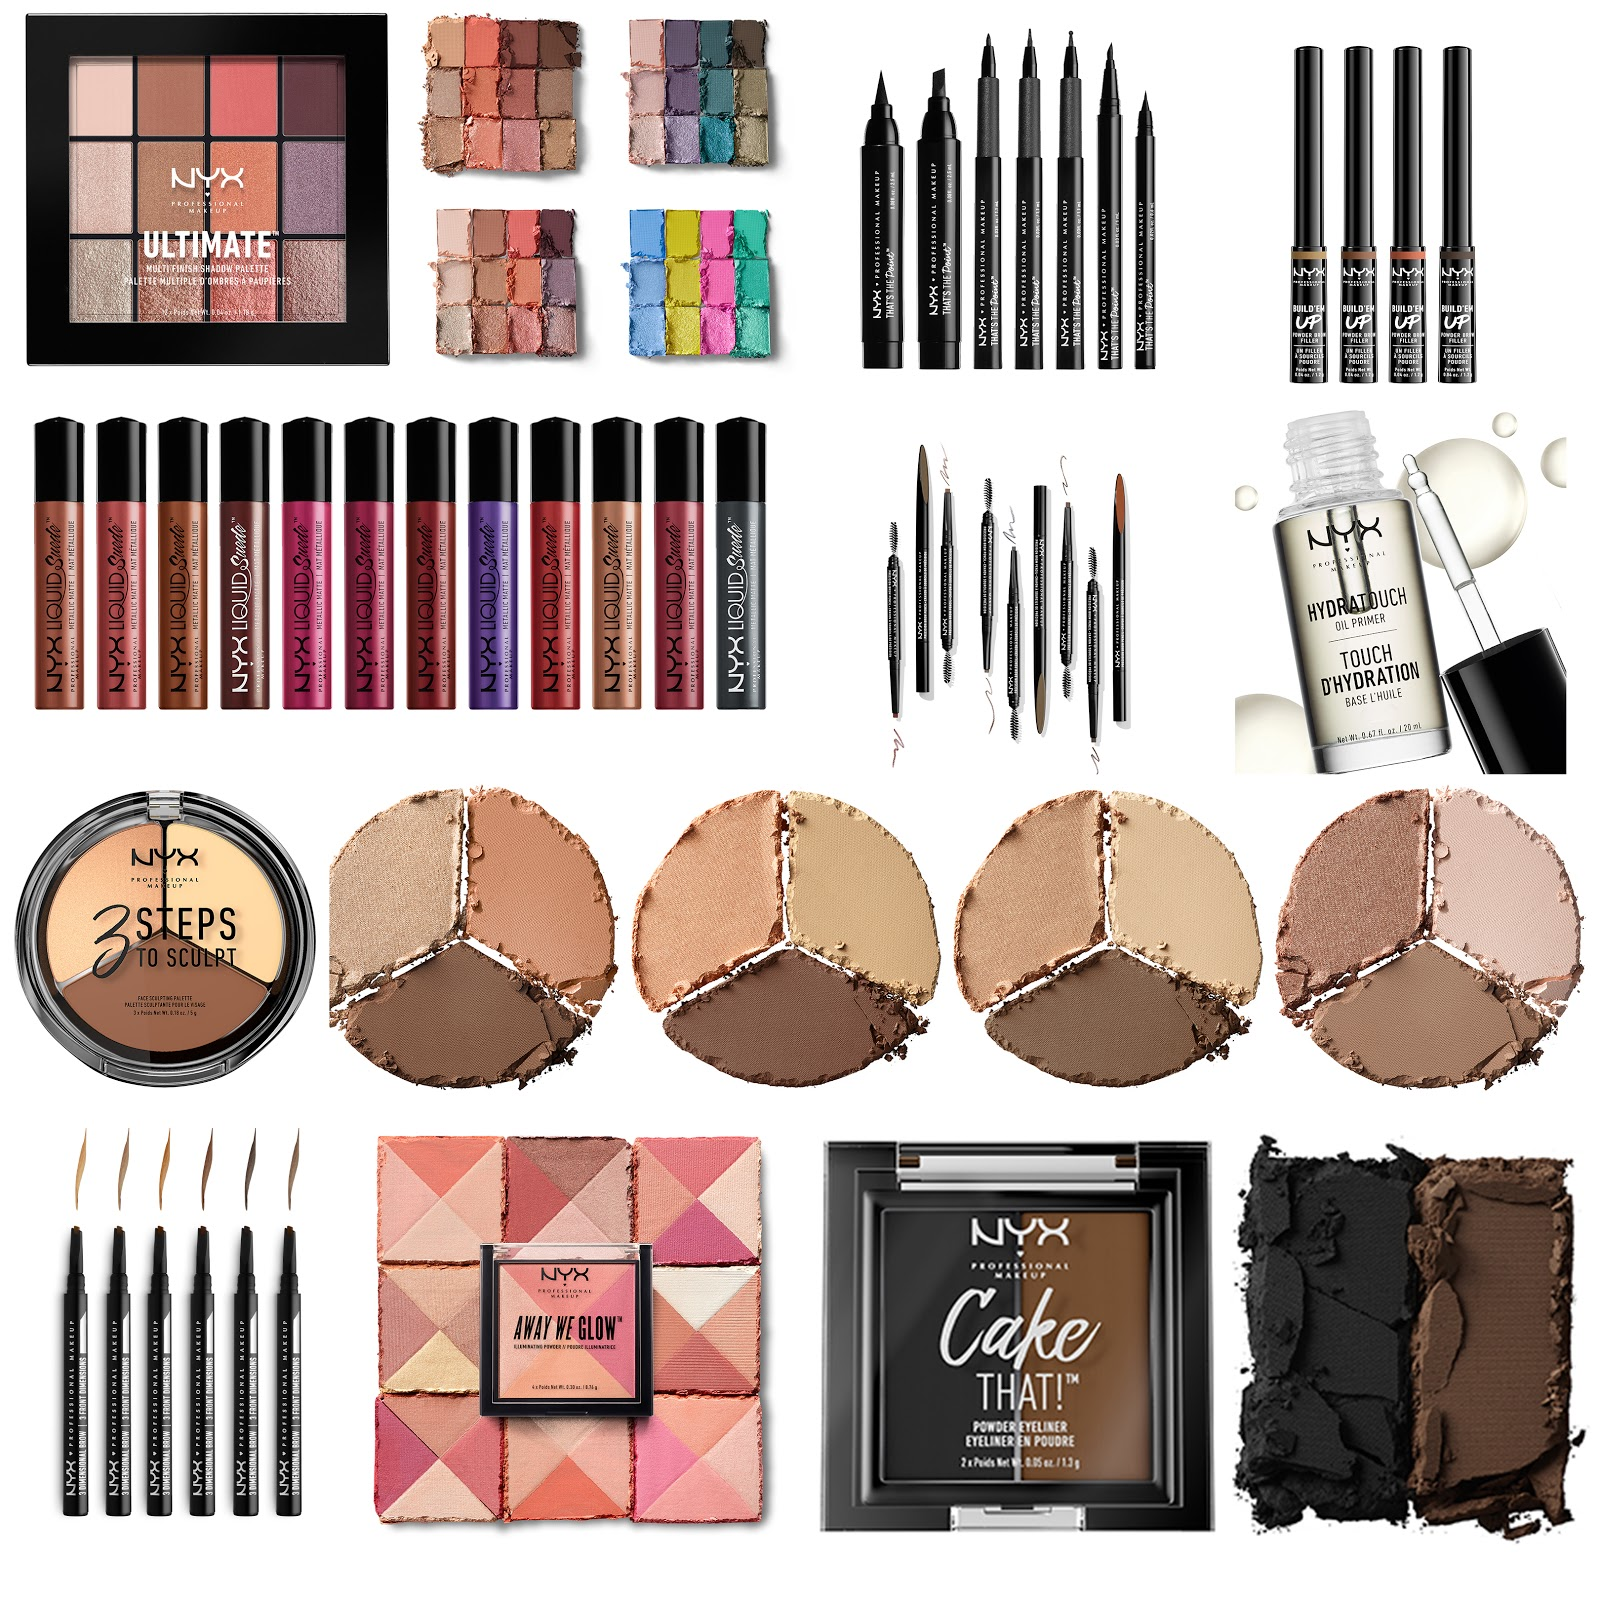 new products NYX professional makeup fall 2017